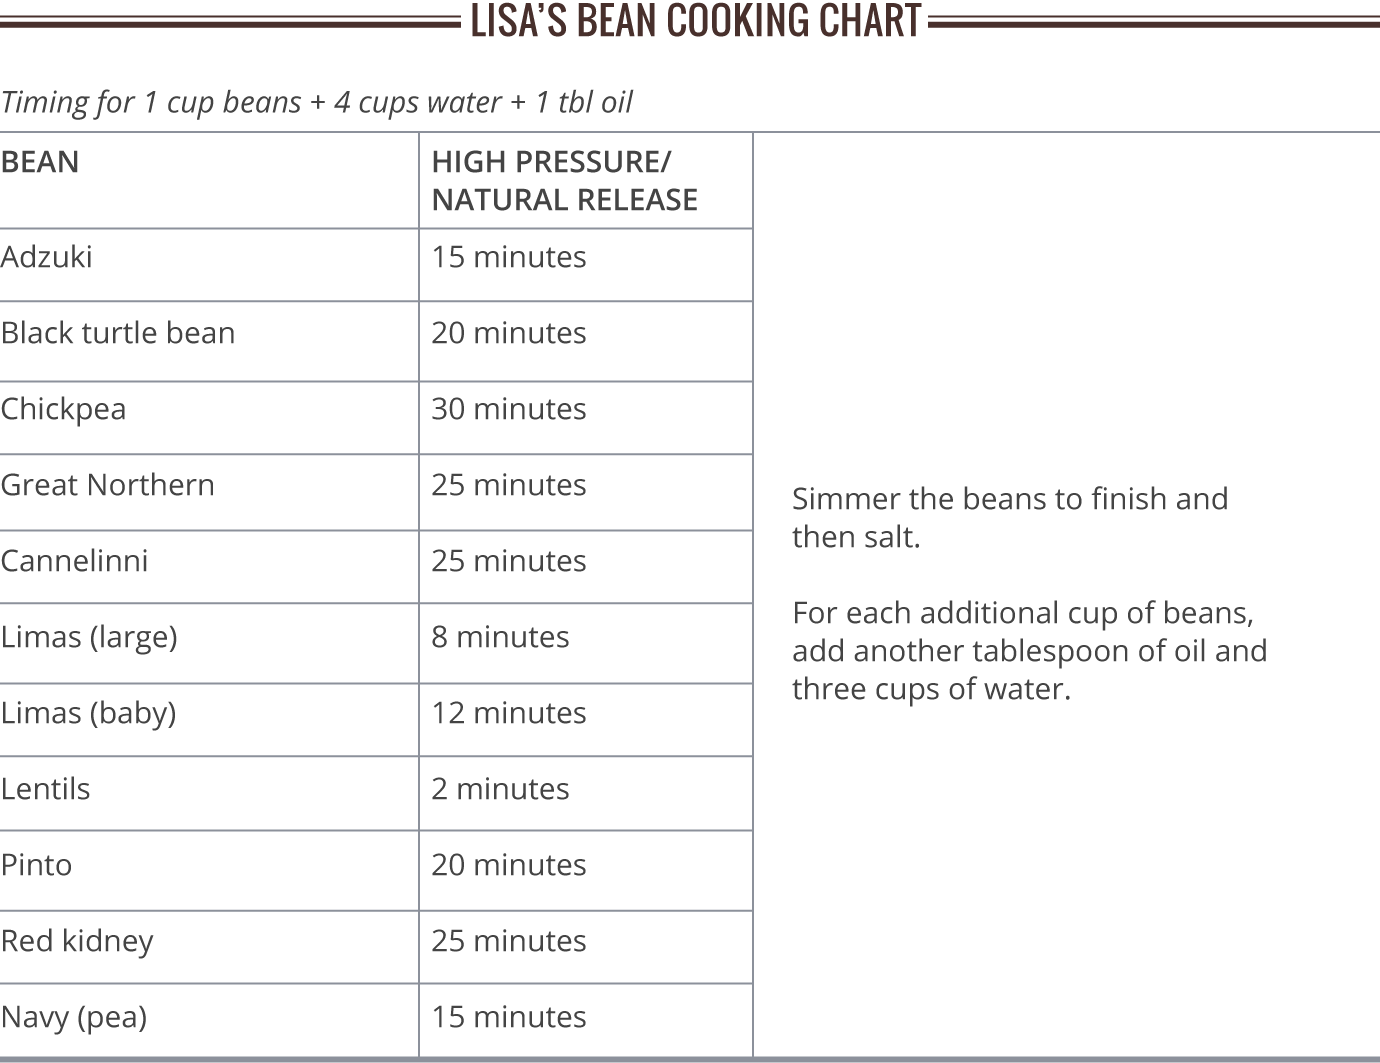 Lisa's Bean Cooking Chart